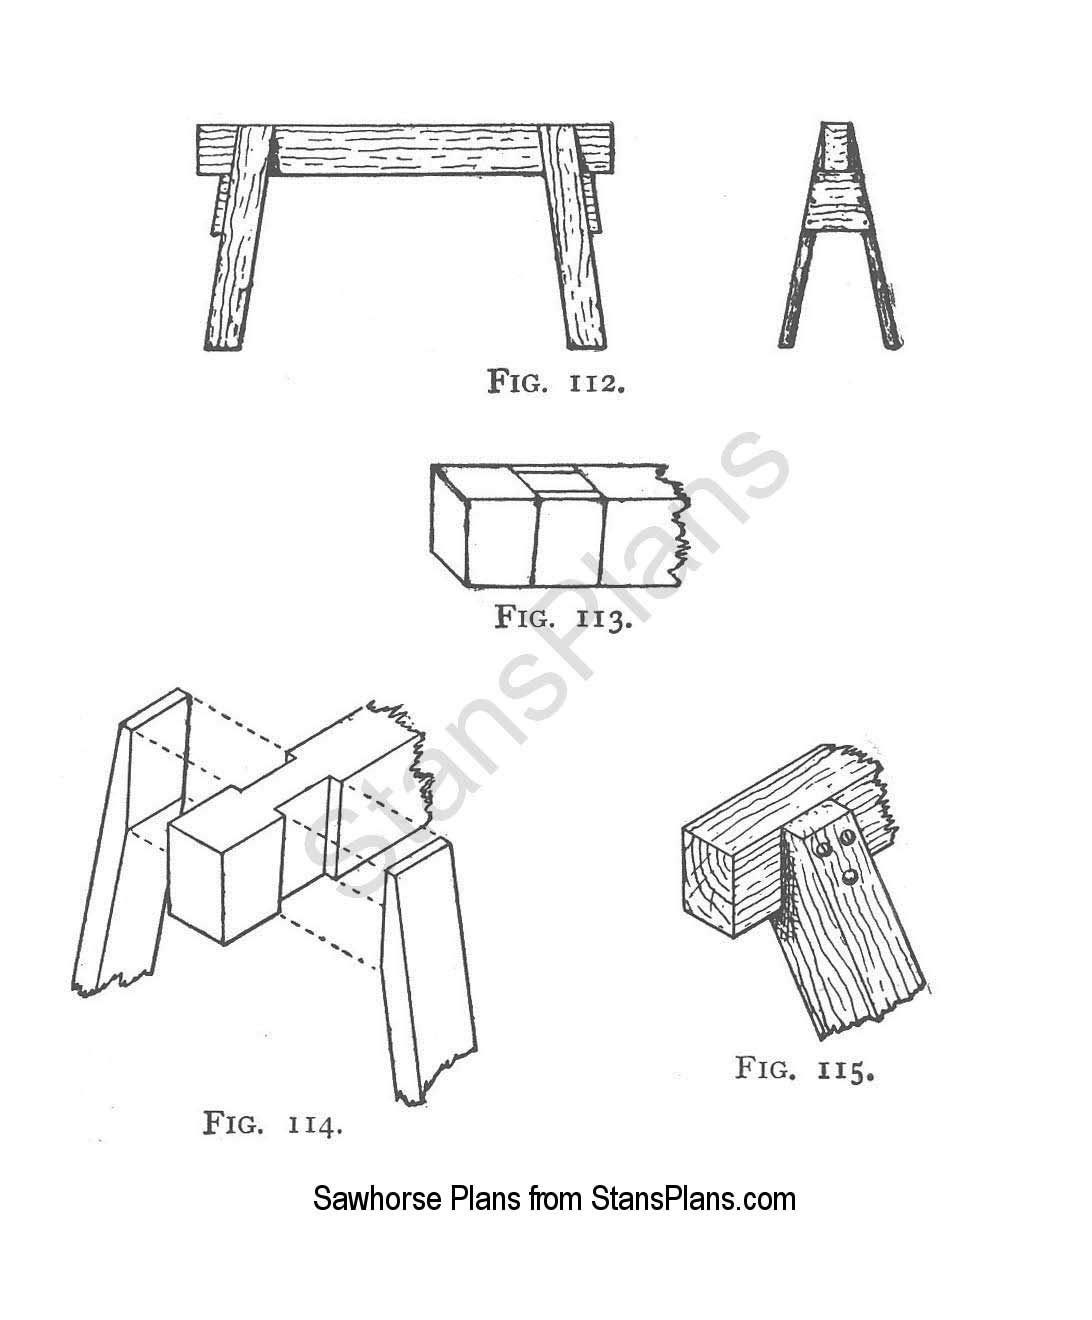 Free Woodworking Plans: Build wooden log saw horse